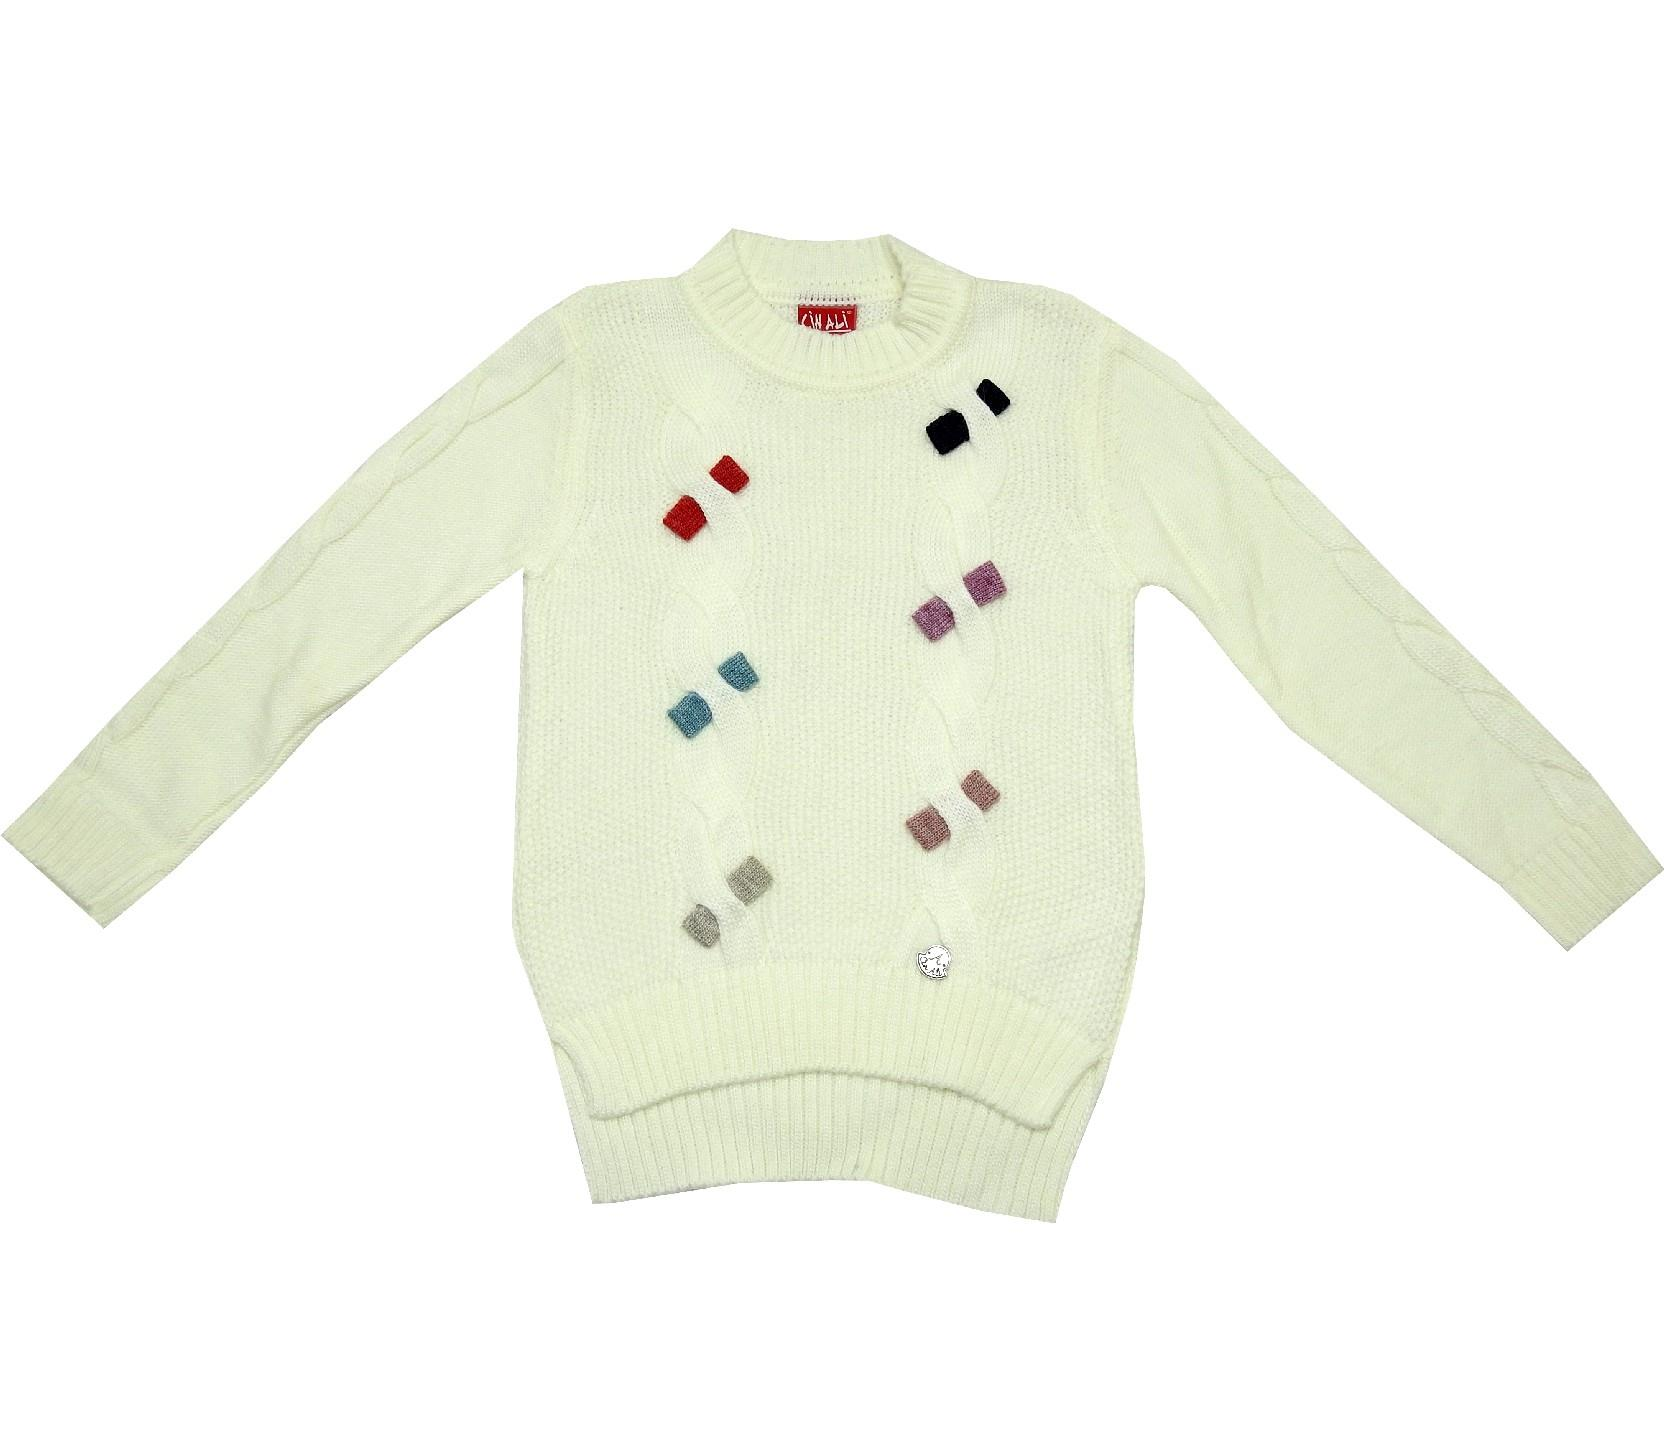 WHOLESALE KNITTED DESIGN DECORATIVE BUCKLE DESIGN SWEATER FOR GIRL (4-6-8-10 AGE)